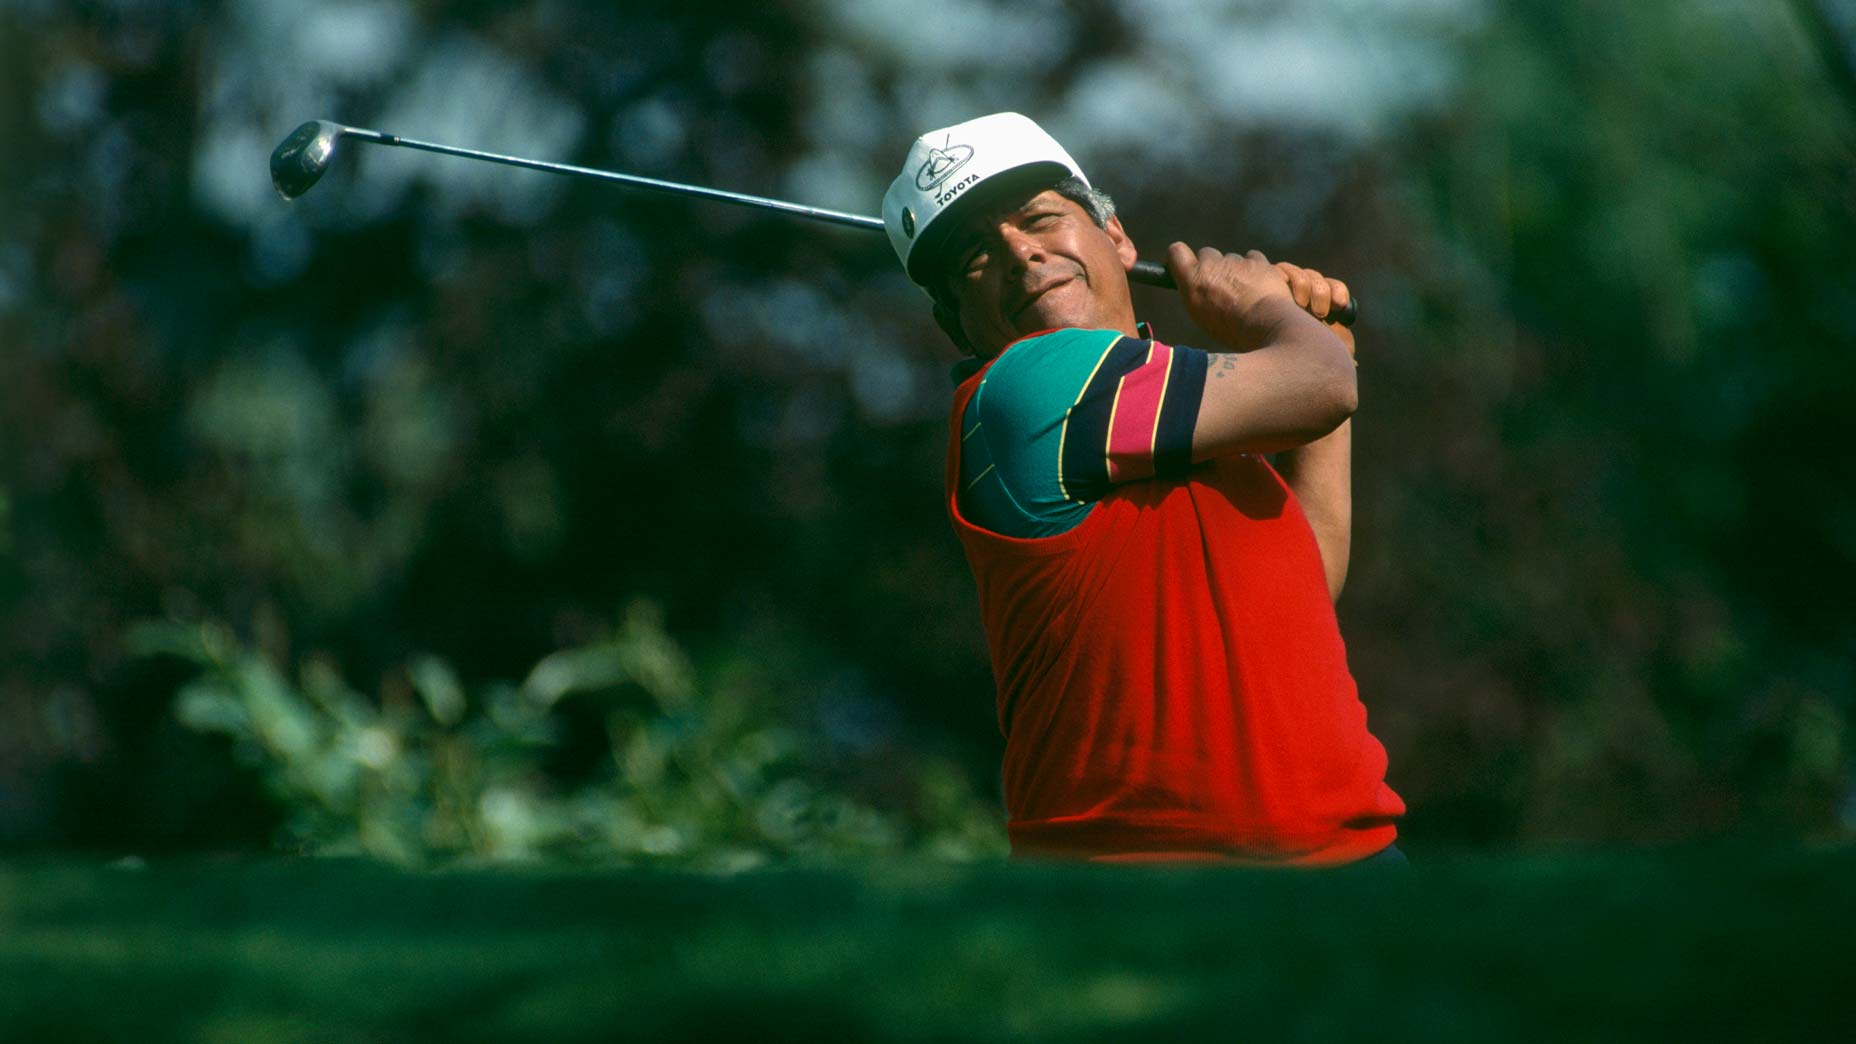 How to make a perfect takeaway: Lee Trevino's keys to starting your swing